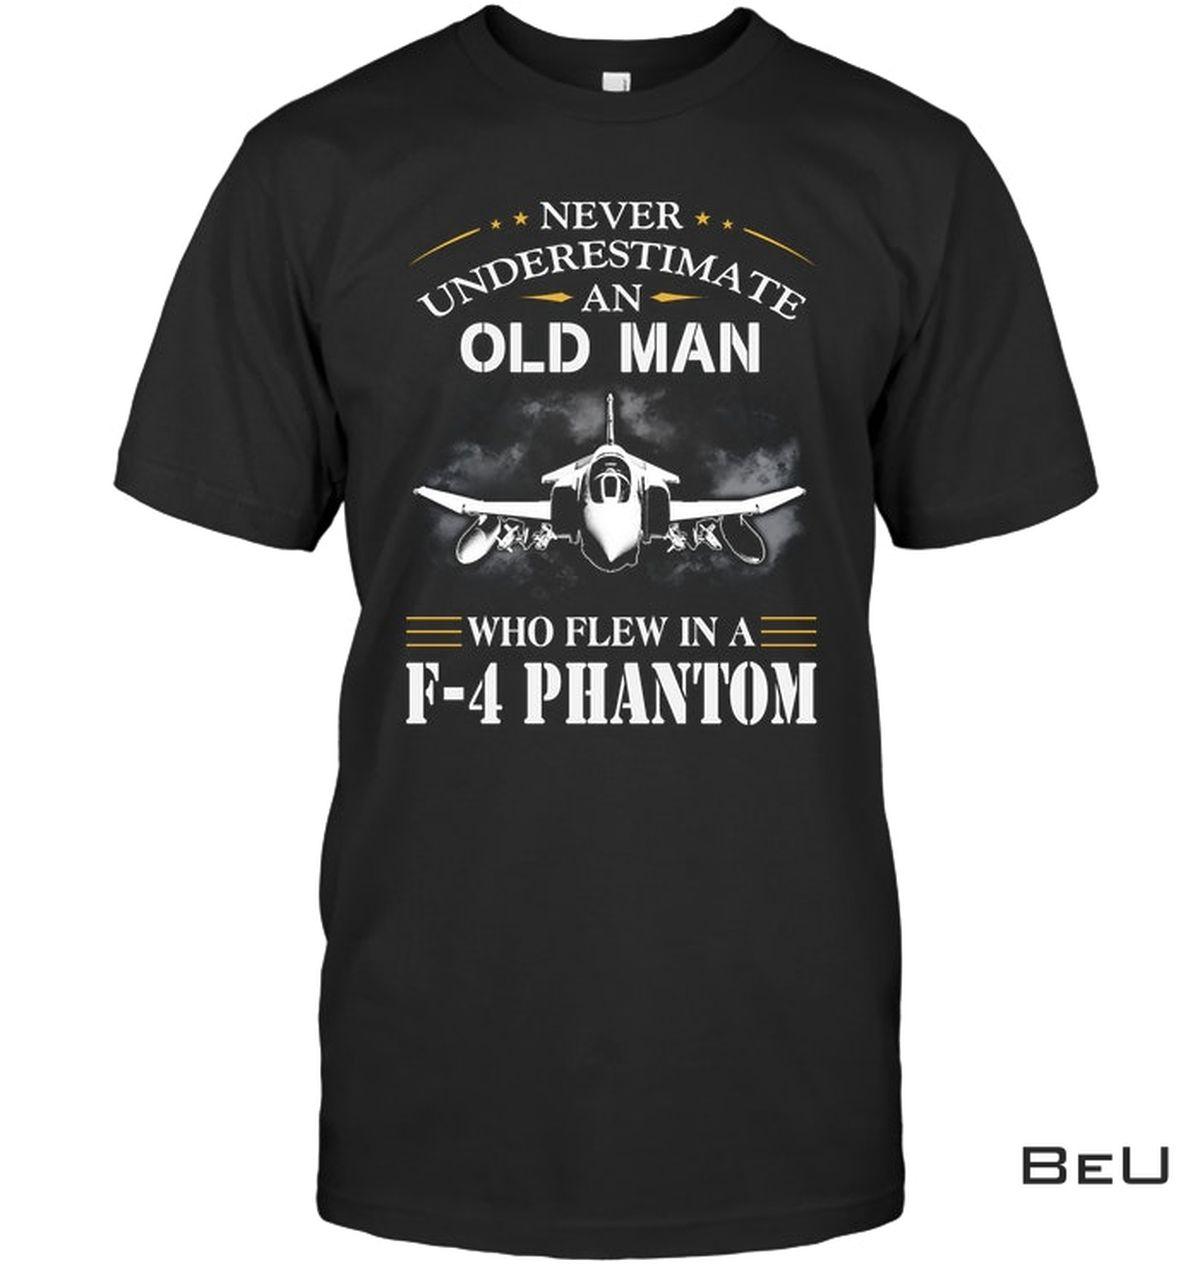 Never Underestimate An Old Man Who Flew In A F-4 Phantom Shirt, hoodie, tank top